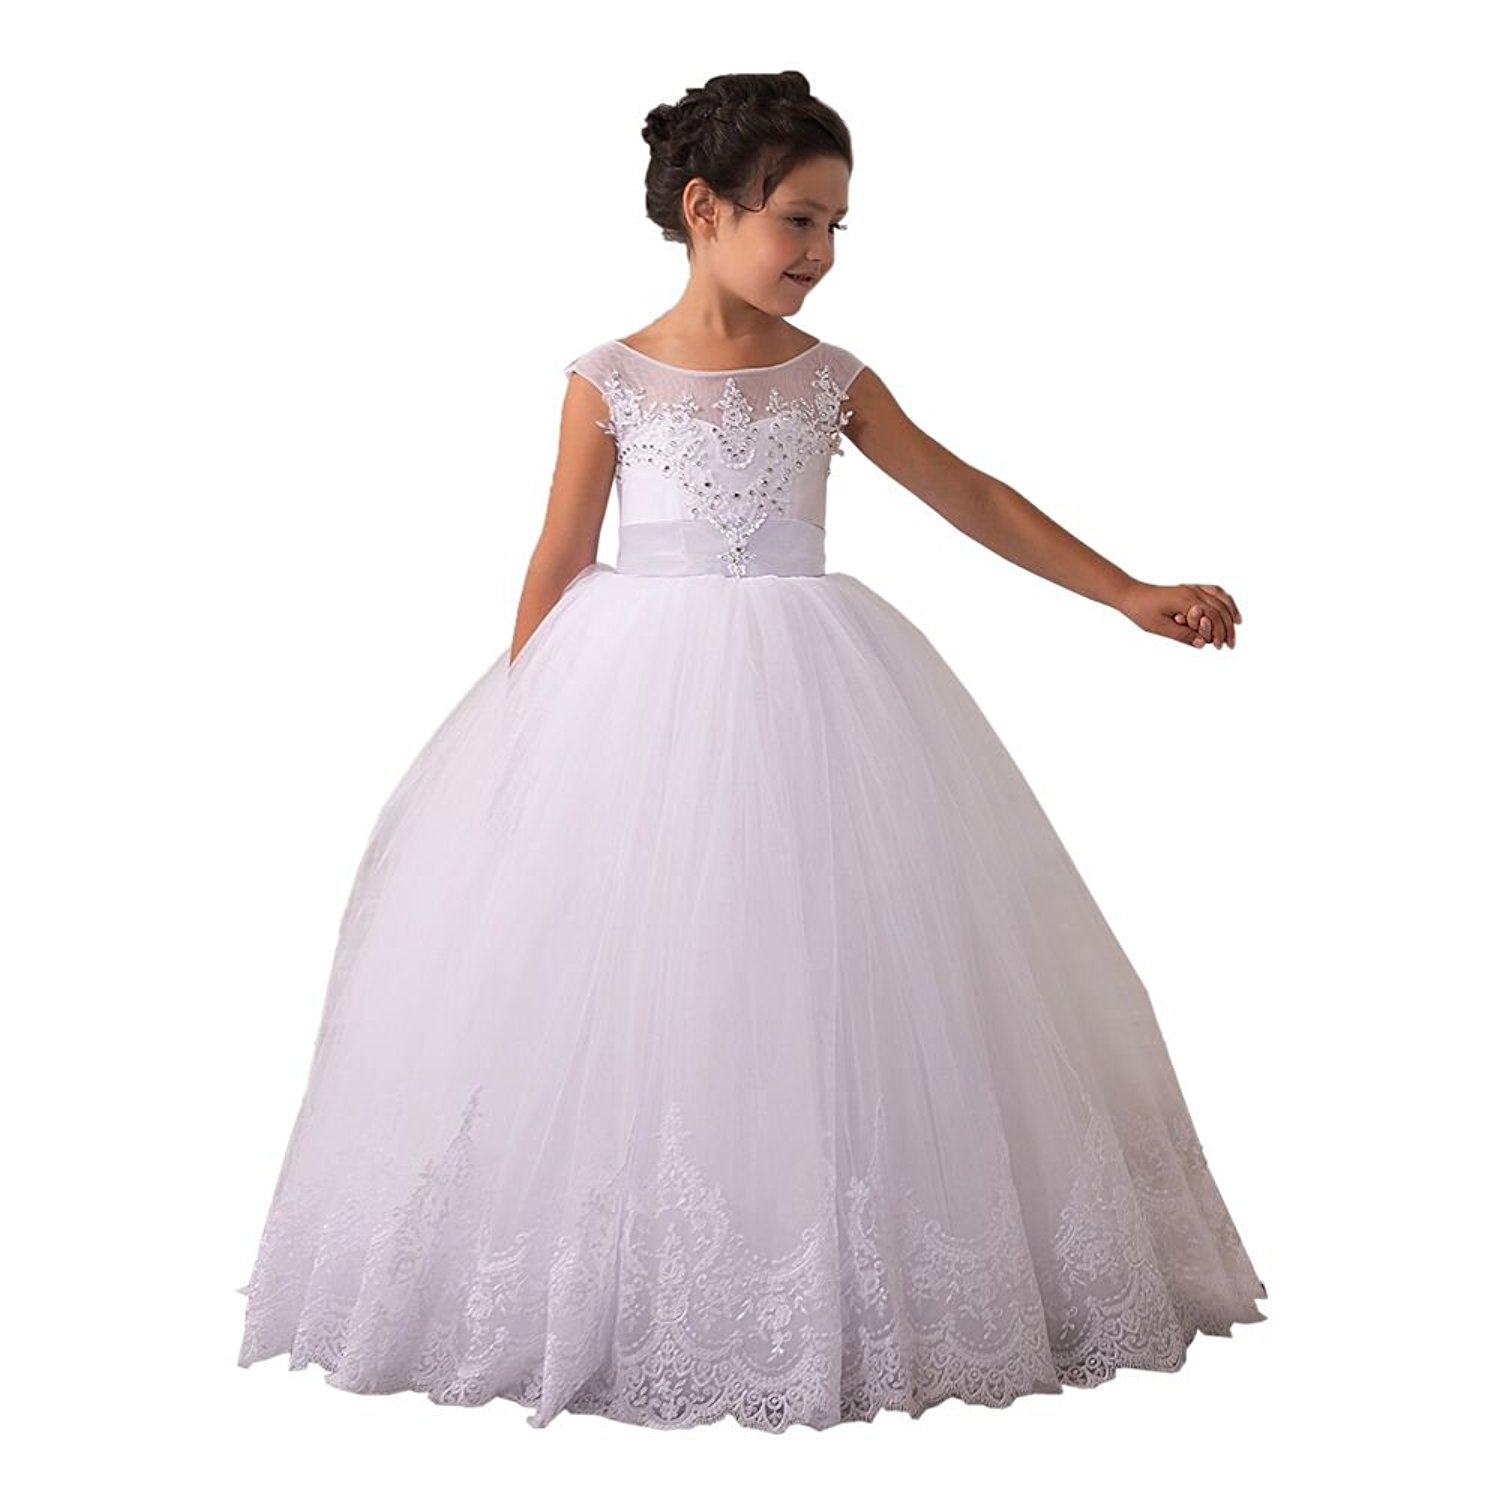 a18a6baad18 Get Quotations · Flower Girls Dresses Long Vintage Lace First Communion  Pageant Ball Gowns